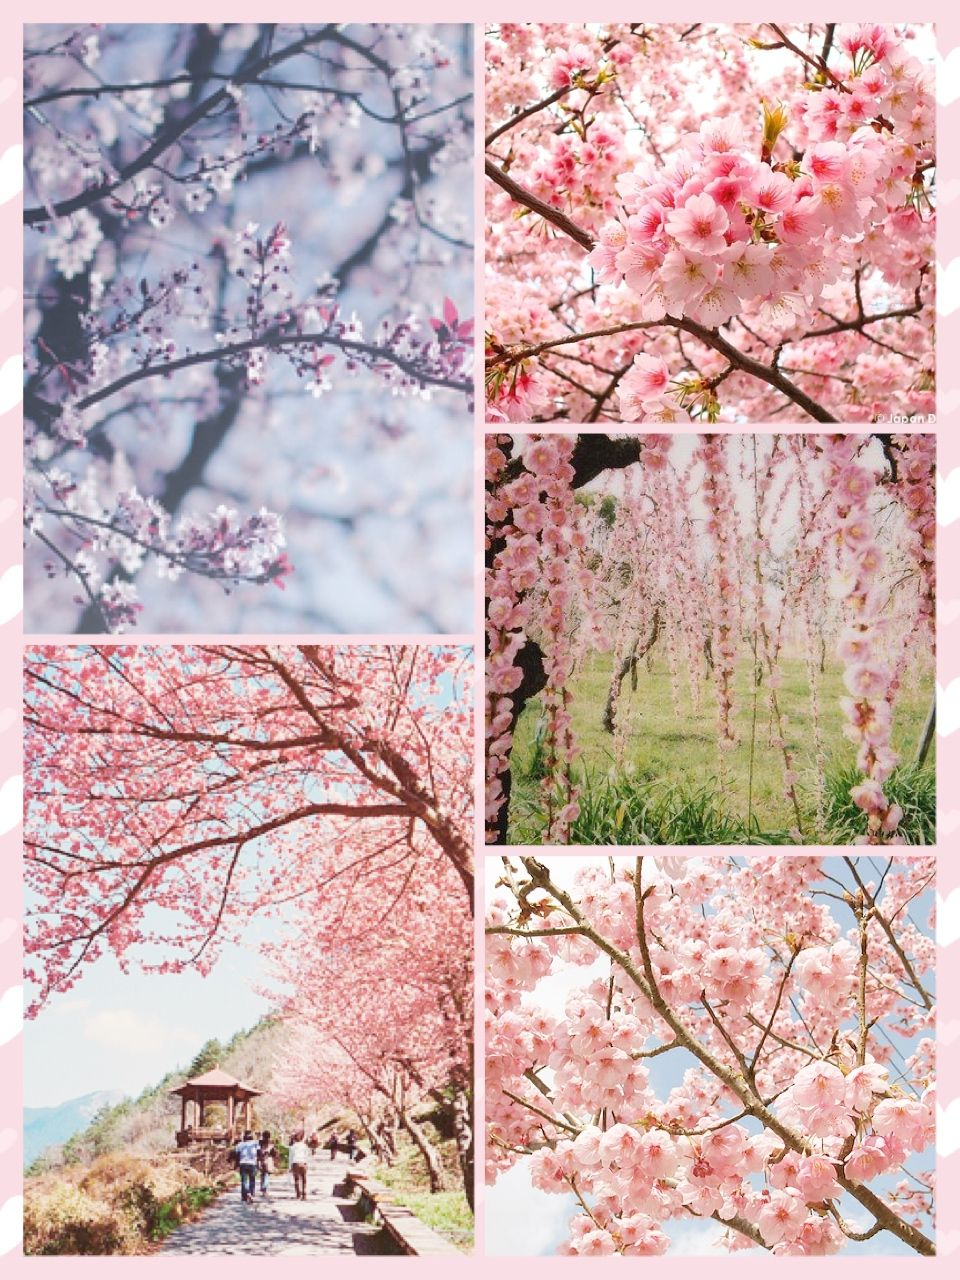 The Many Cherry Blossom Trees Of Japan Aesthetic Pastel Wallpaper Romantic Colors Palette Blossom Trees